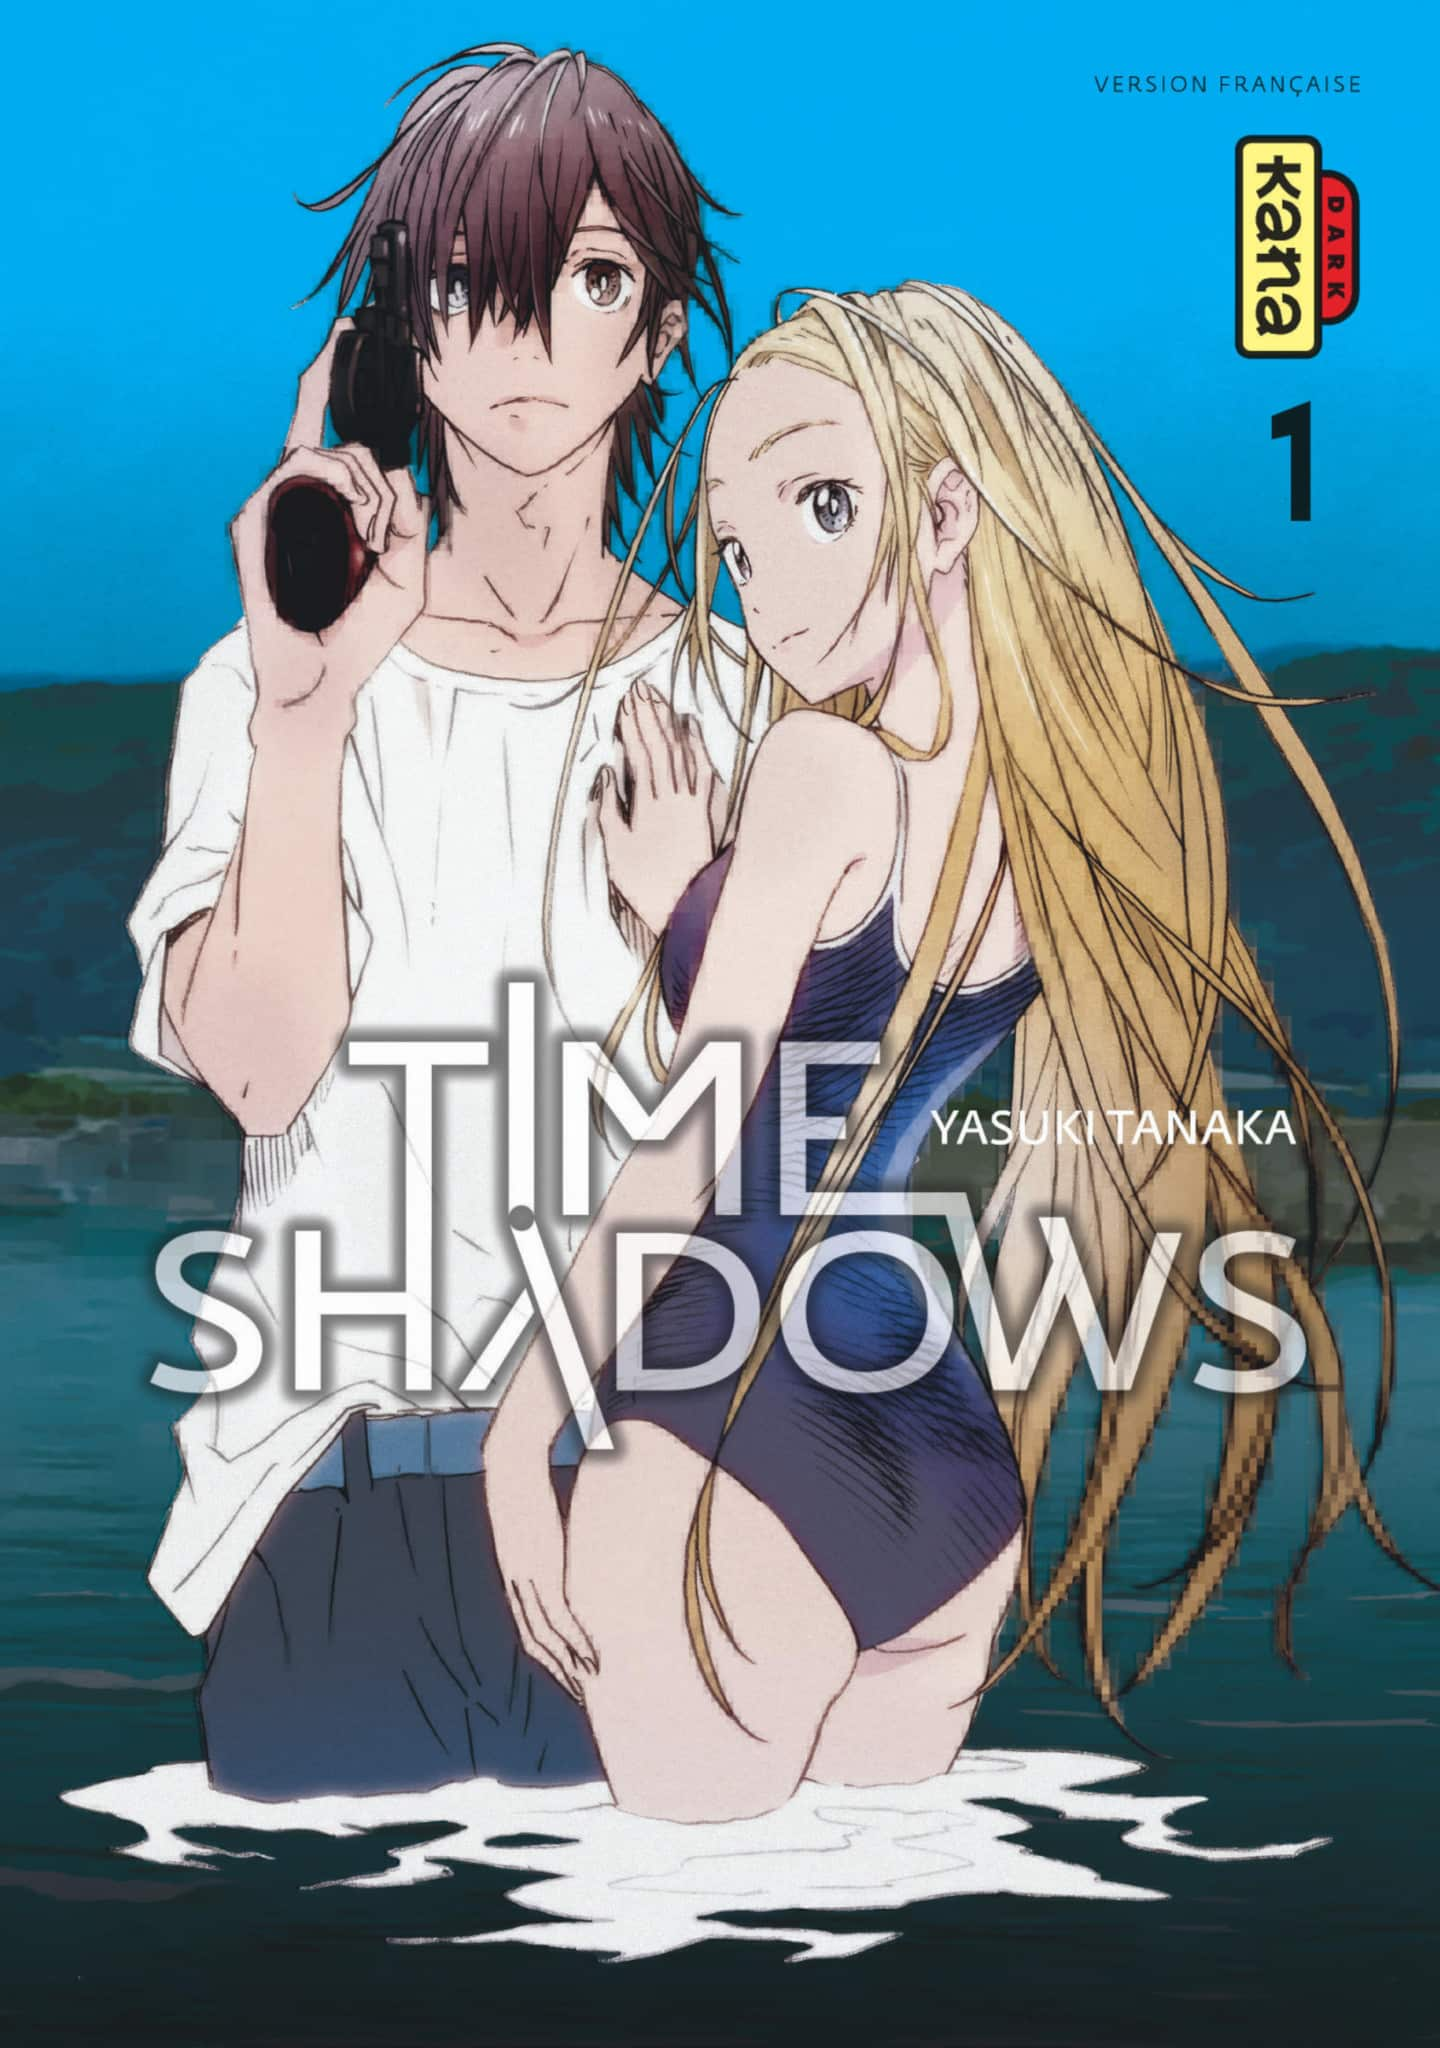 Annonce de anime Time Shadows